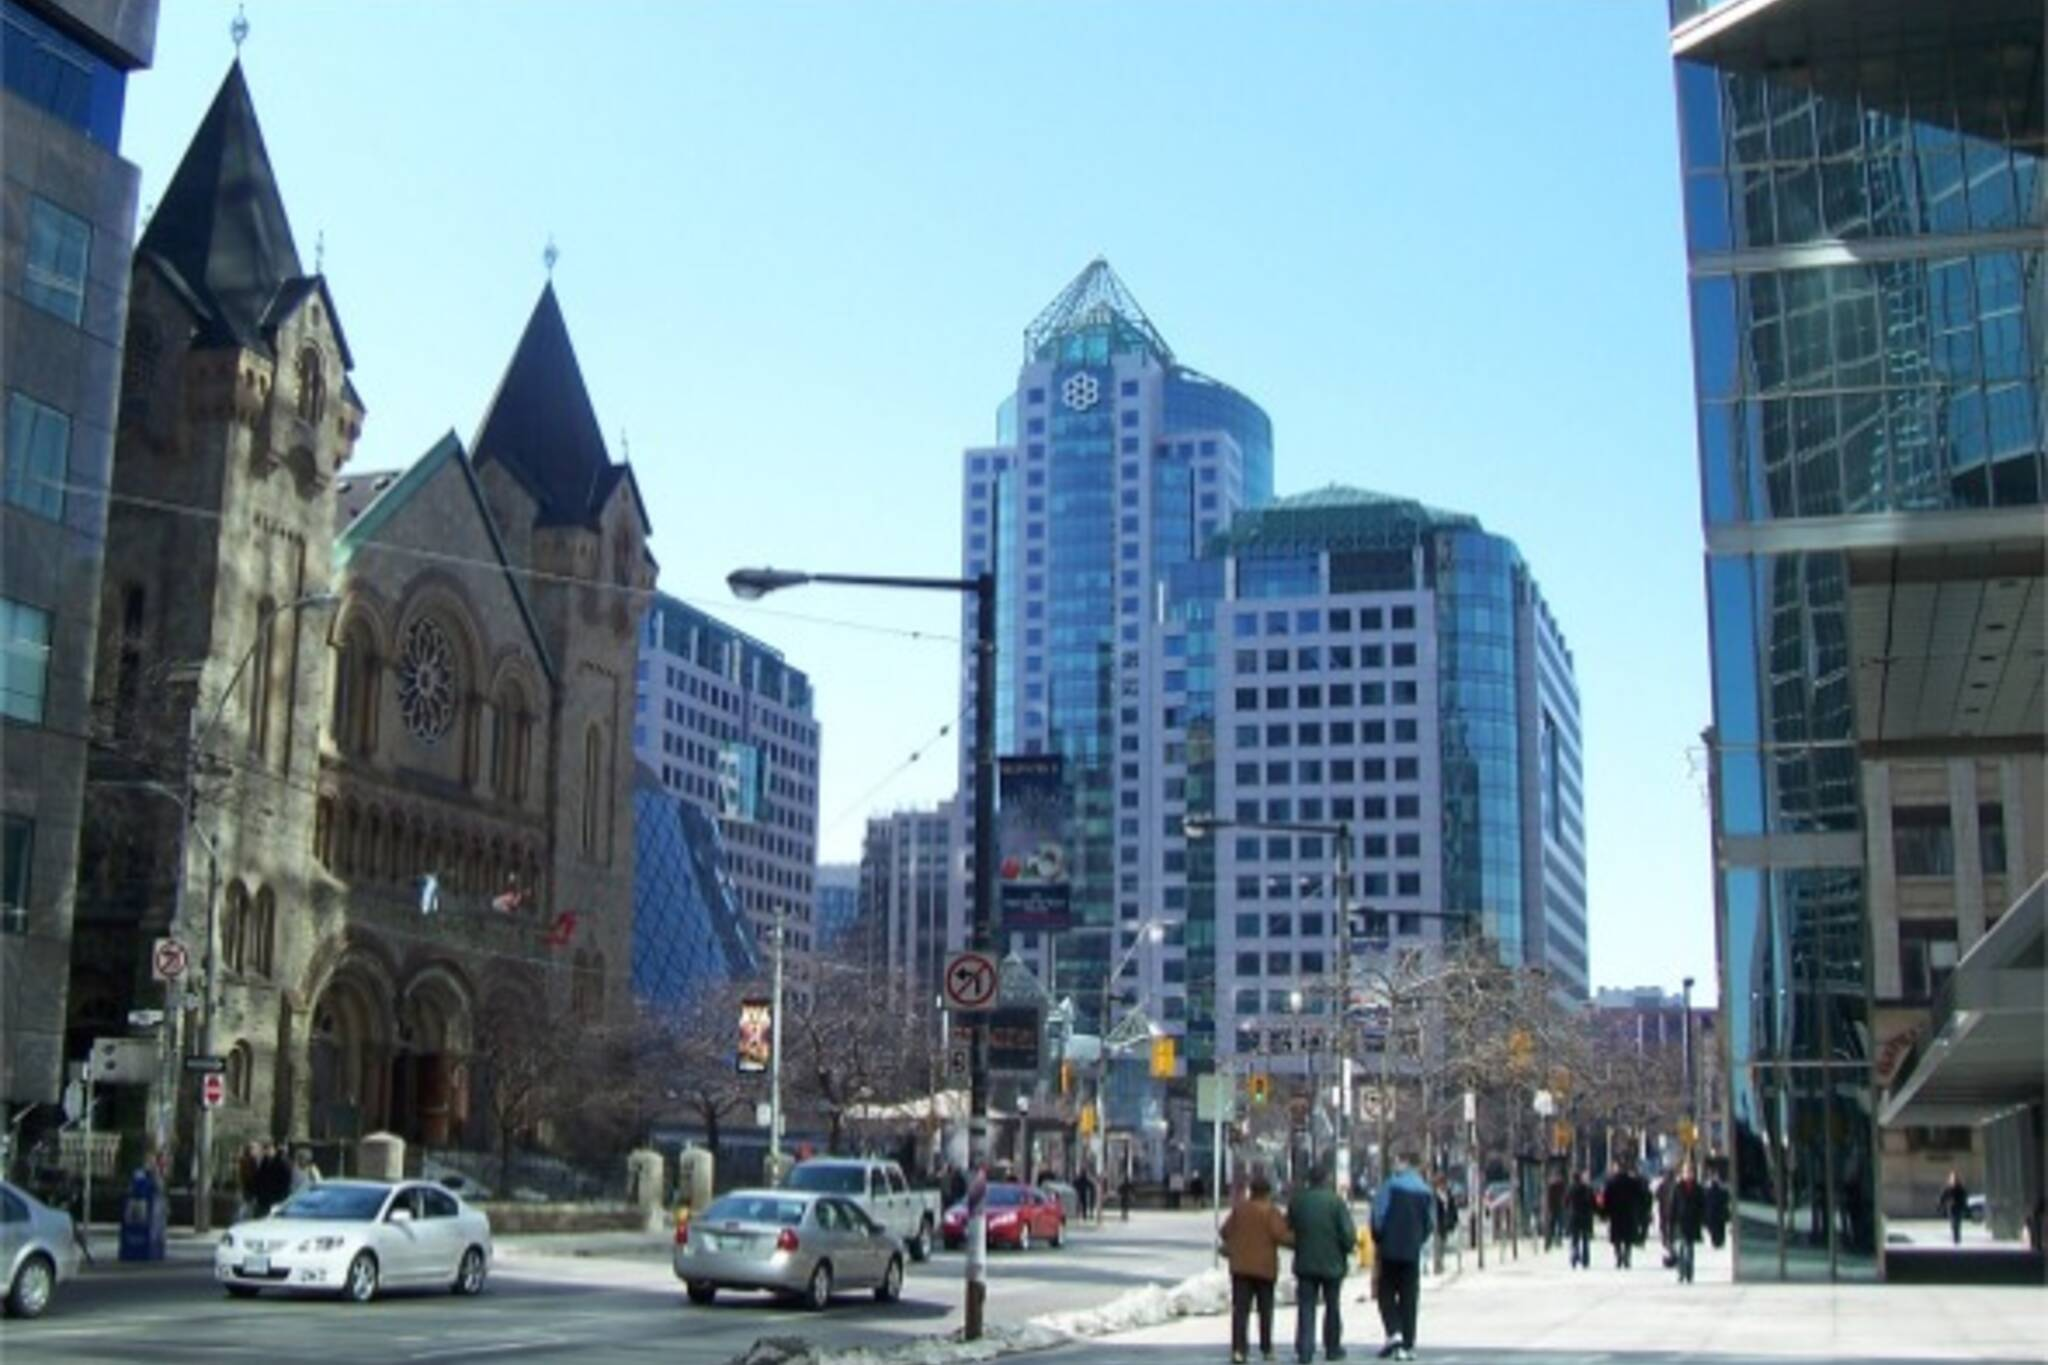 King and Simcoe, showing Roy Thomson Hall, Metro Hall, and St. Andrew's Church